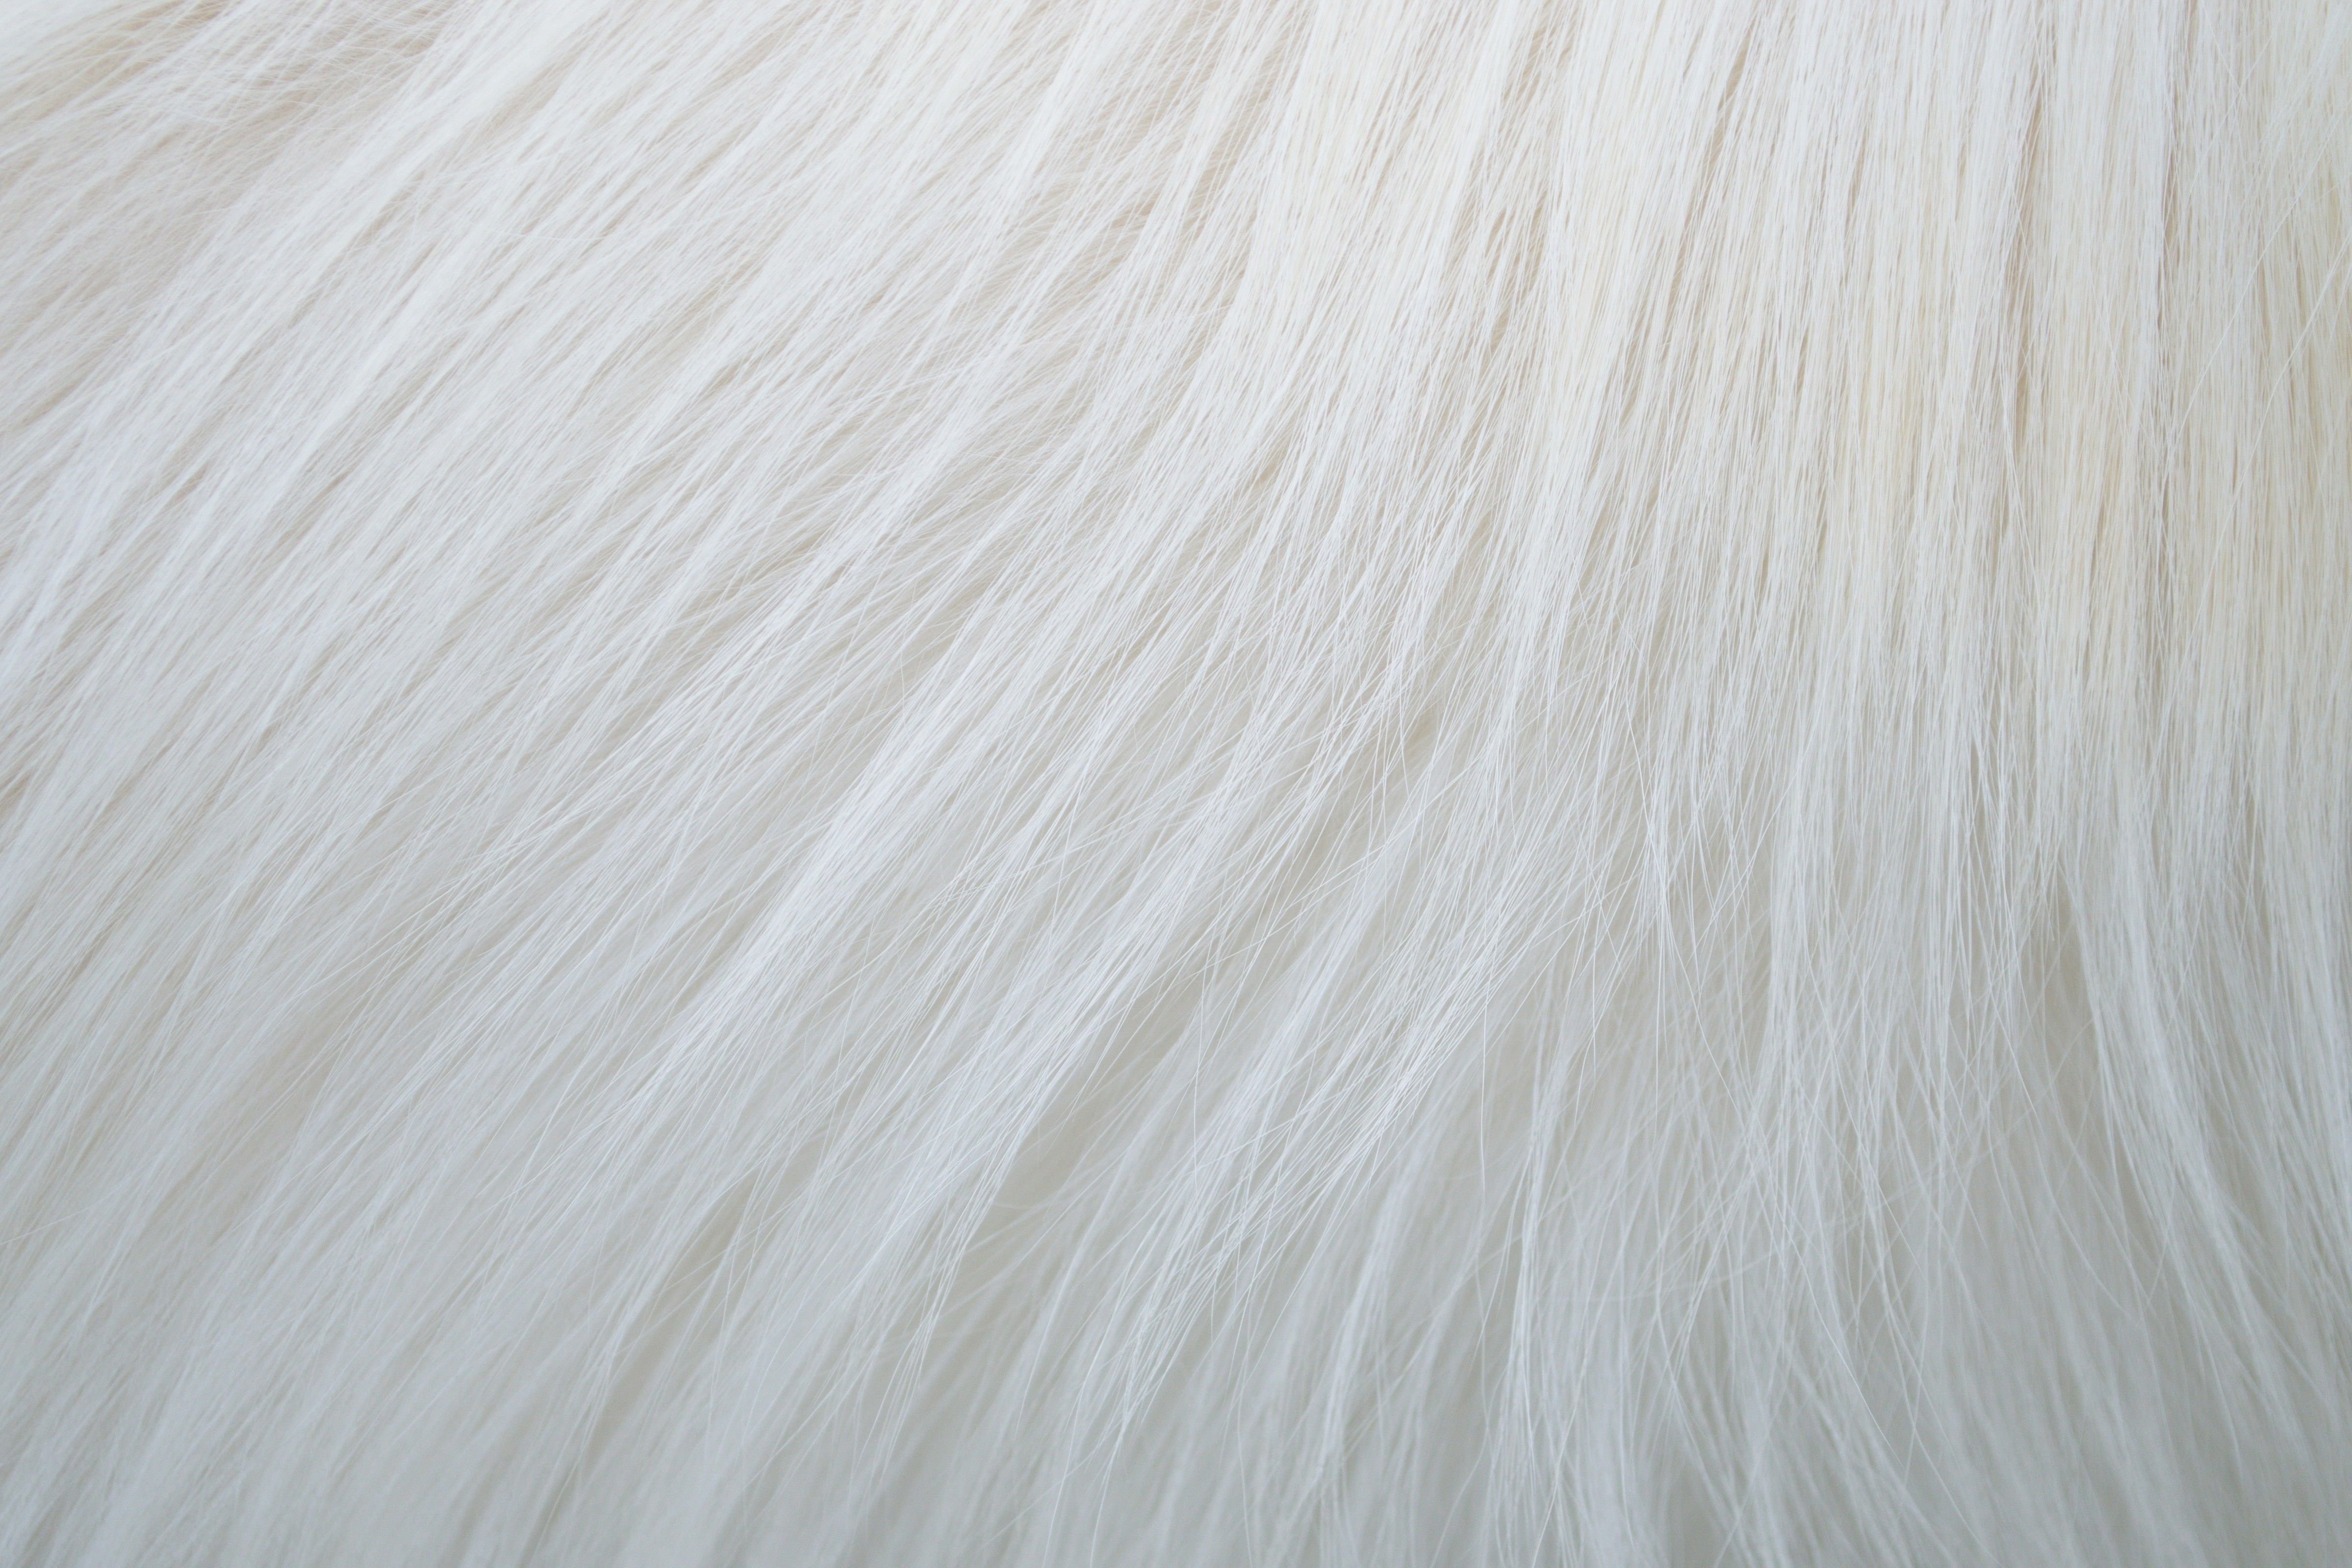 6 Dog Fur Textures – Outside the Fray | Drawing - Texture ...